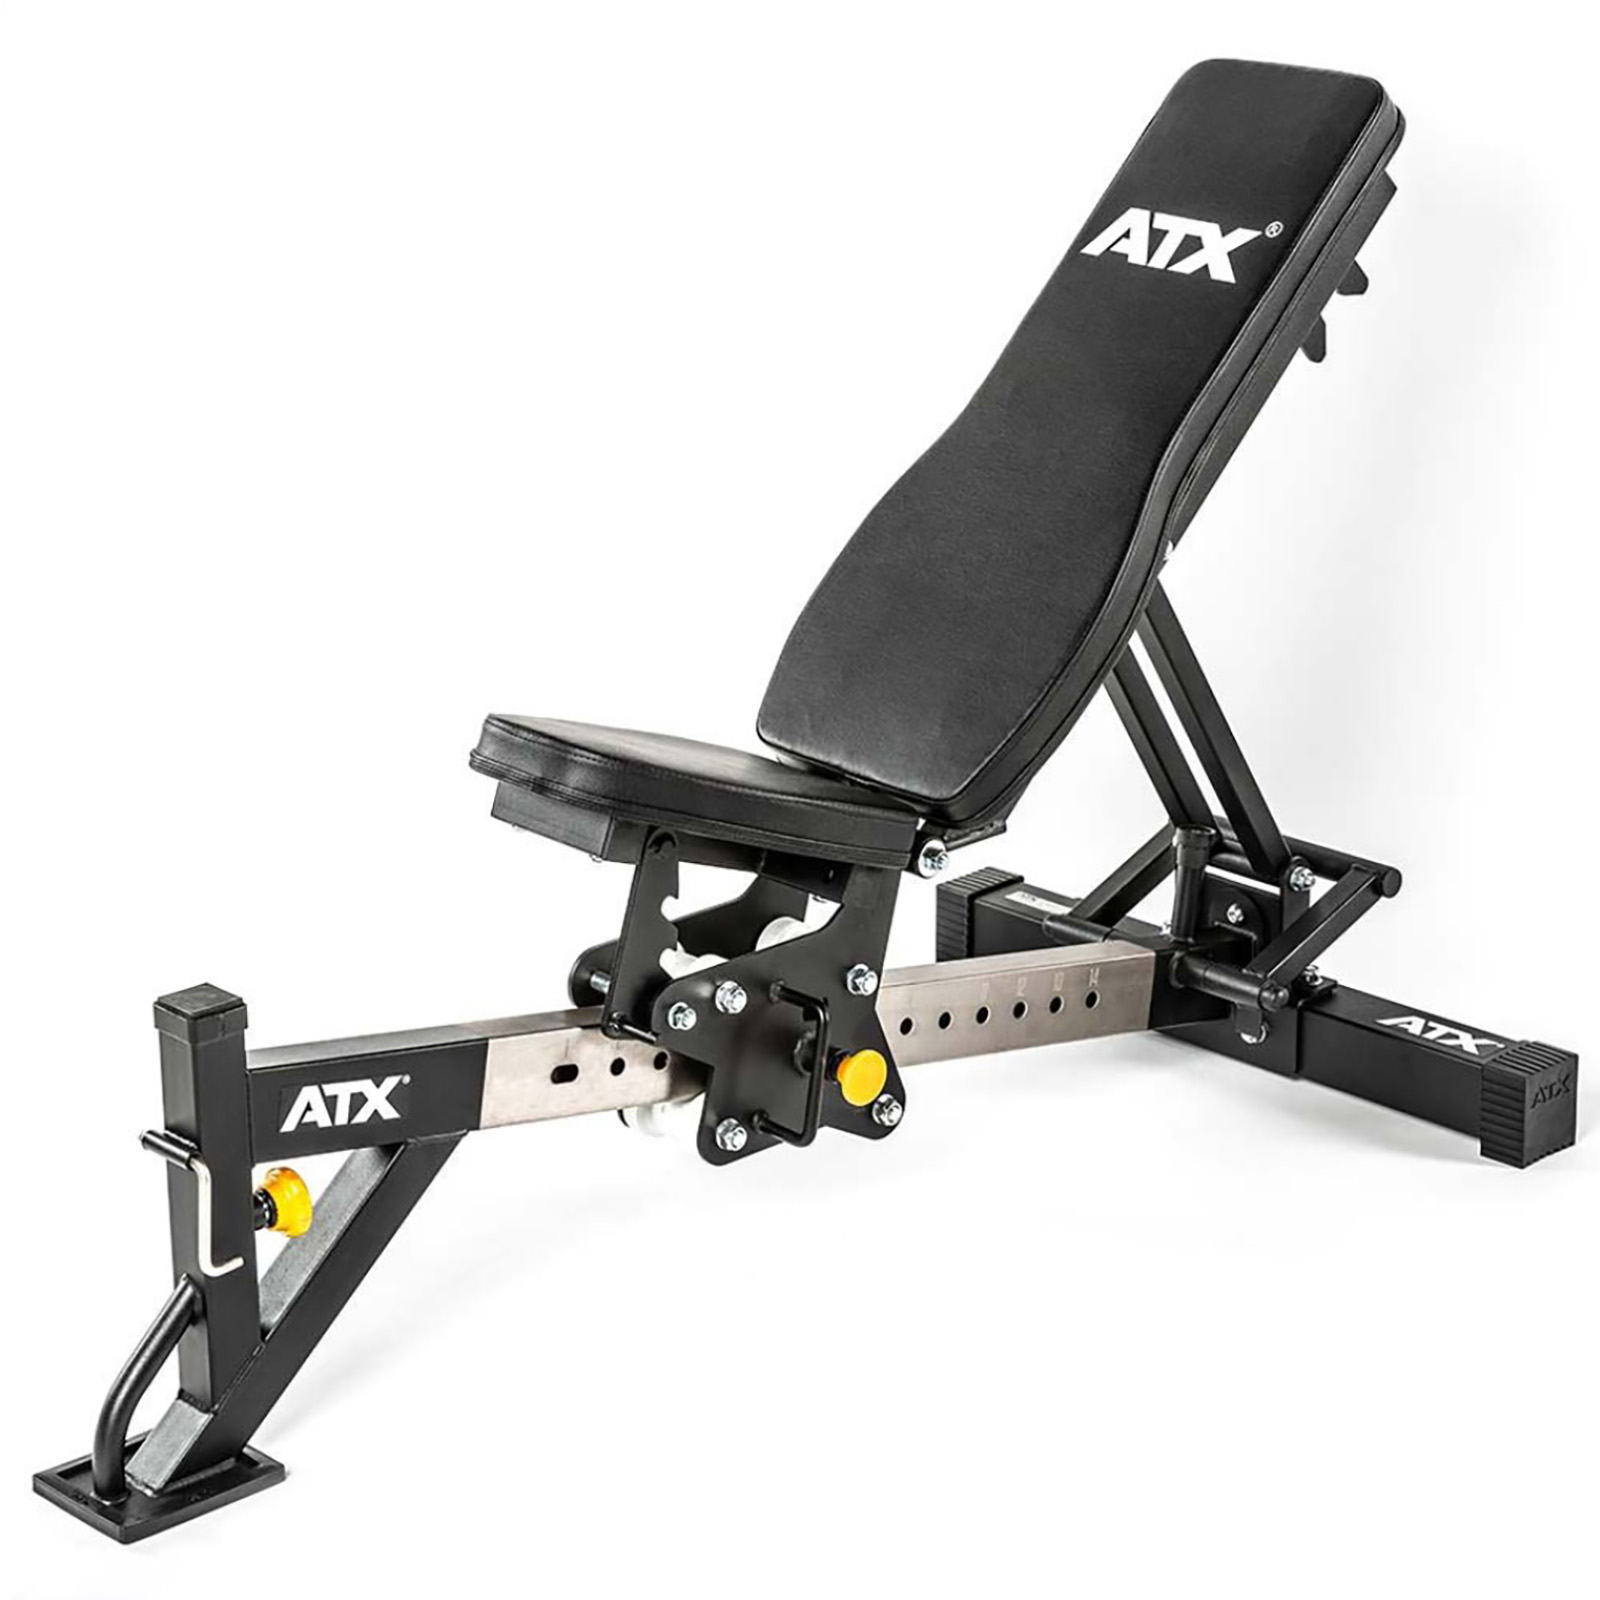 ATX® incline/decline bench